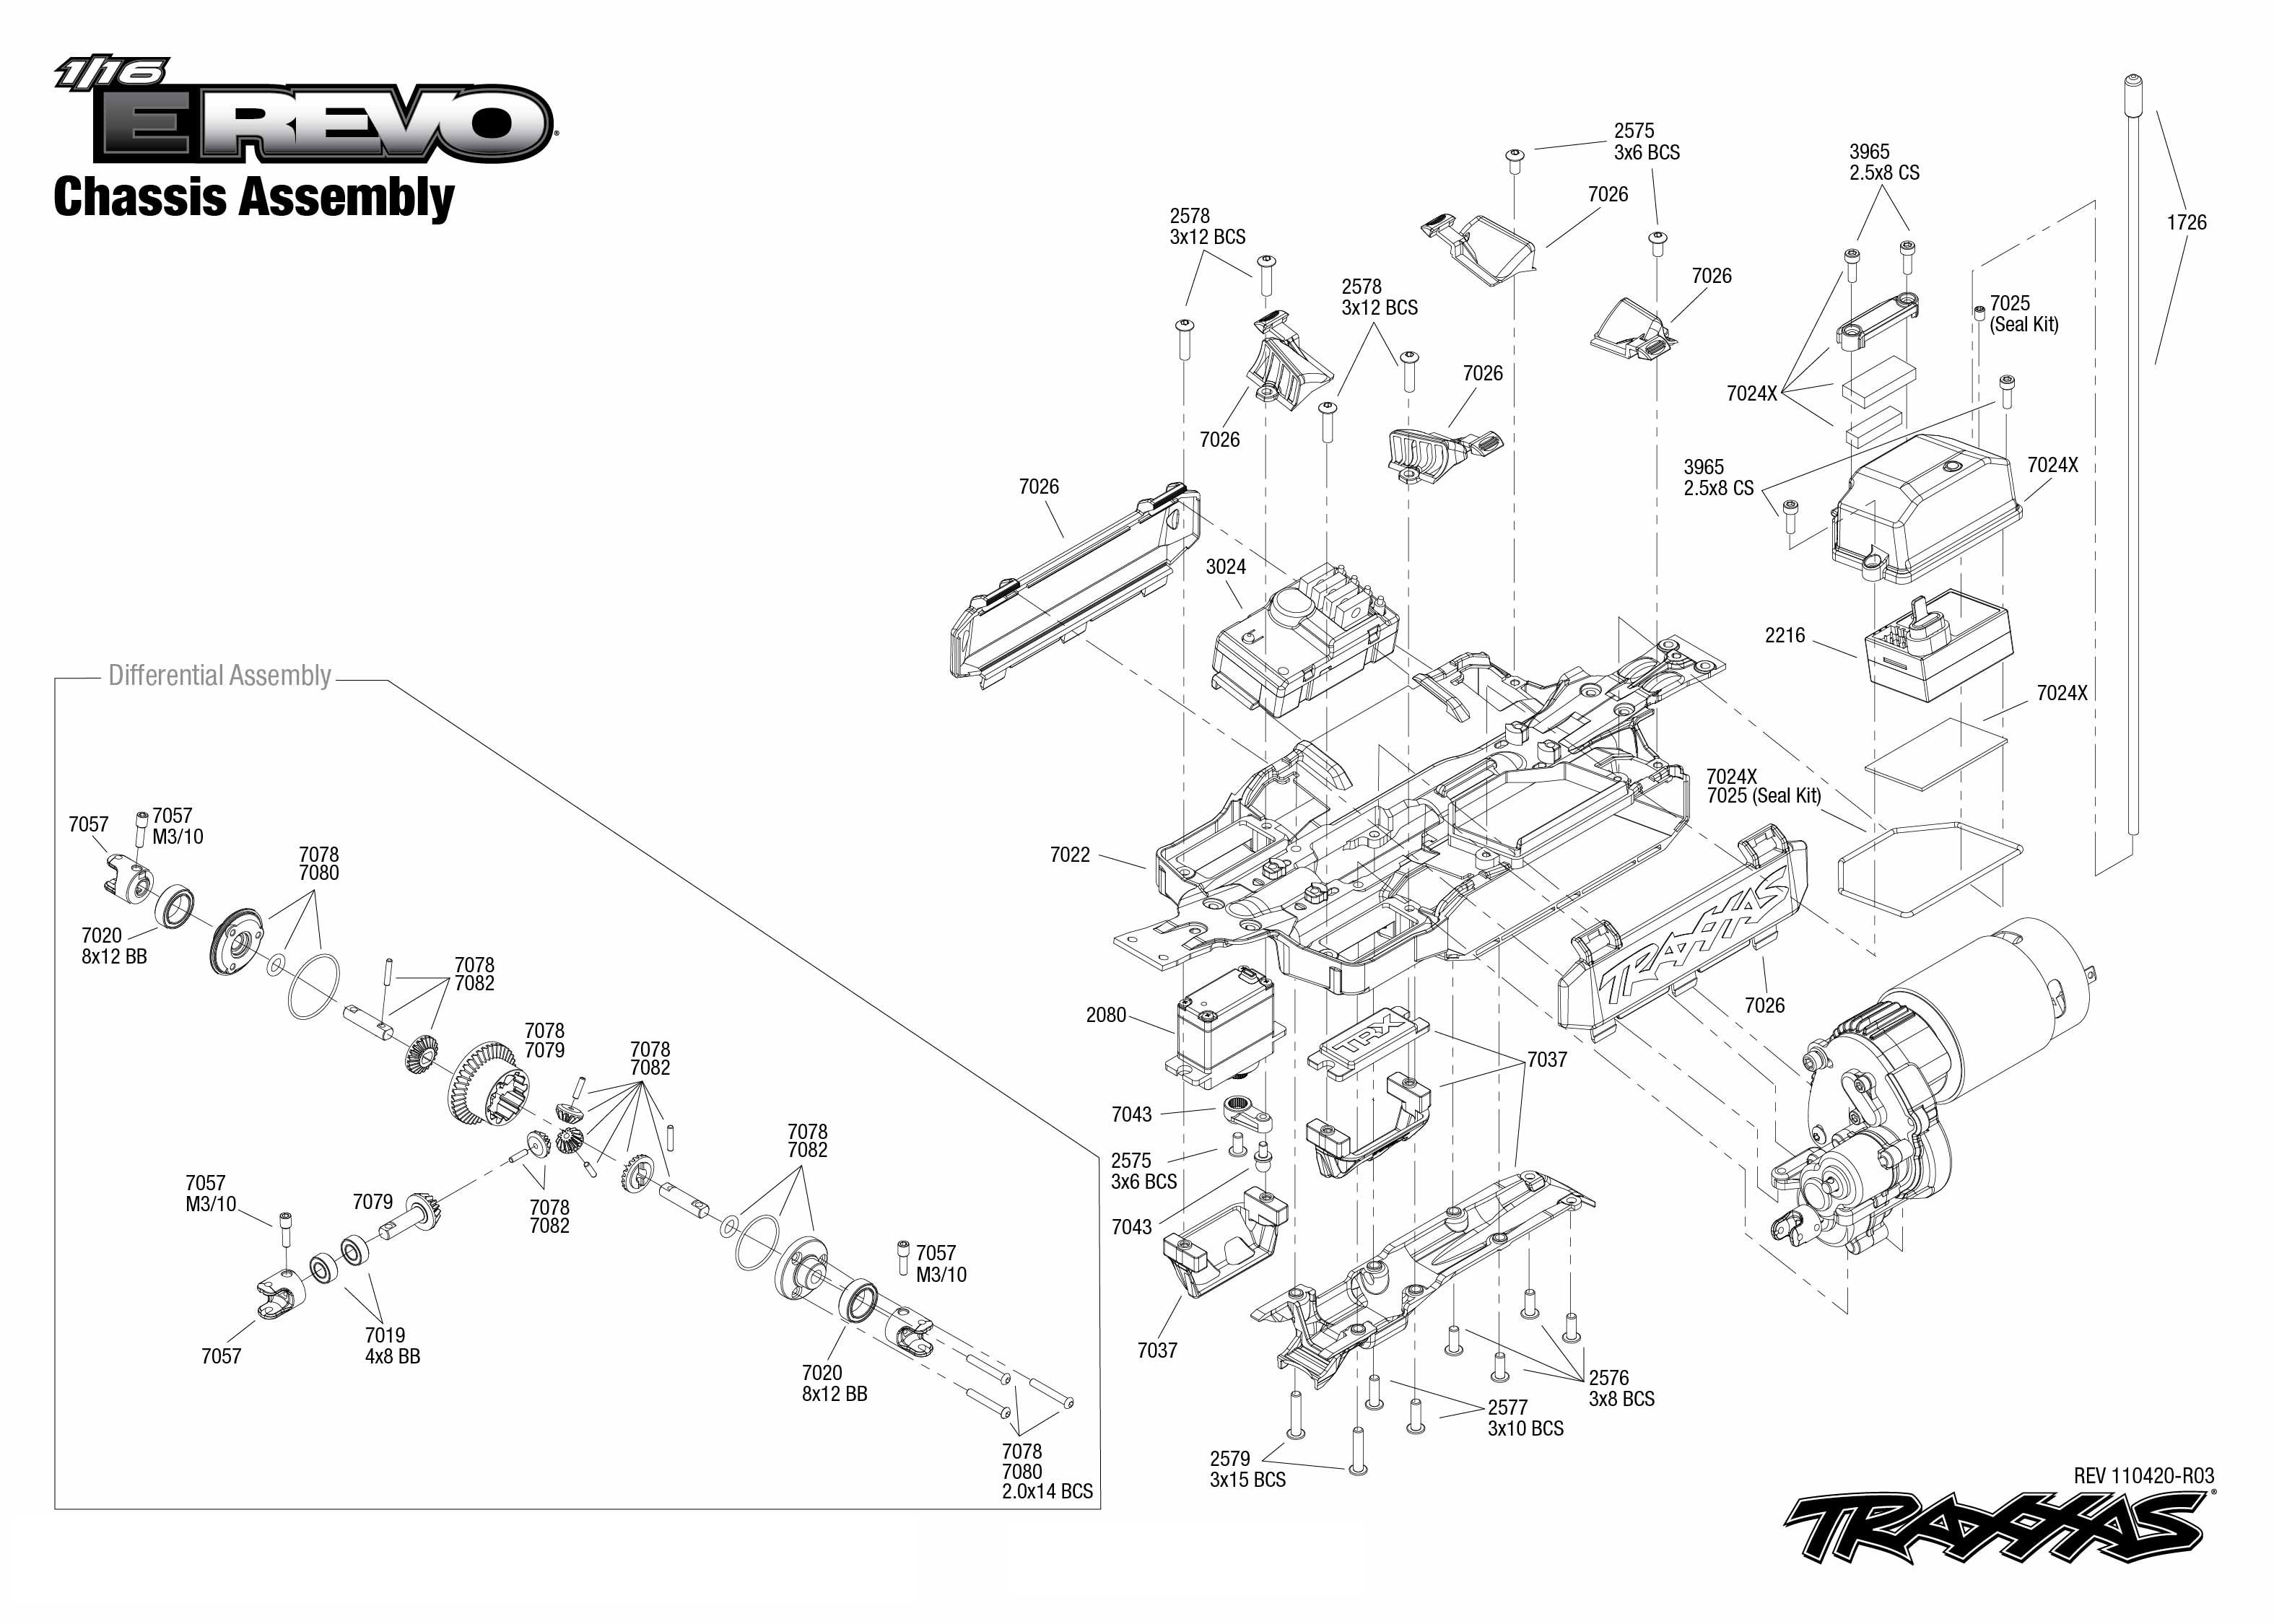 Revo 3 Wiring Diagram Just Another Data Traxxas Schematic Of Trusted Diagrams Simple Electric Motor